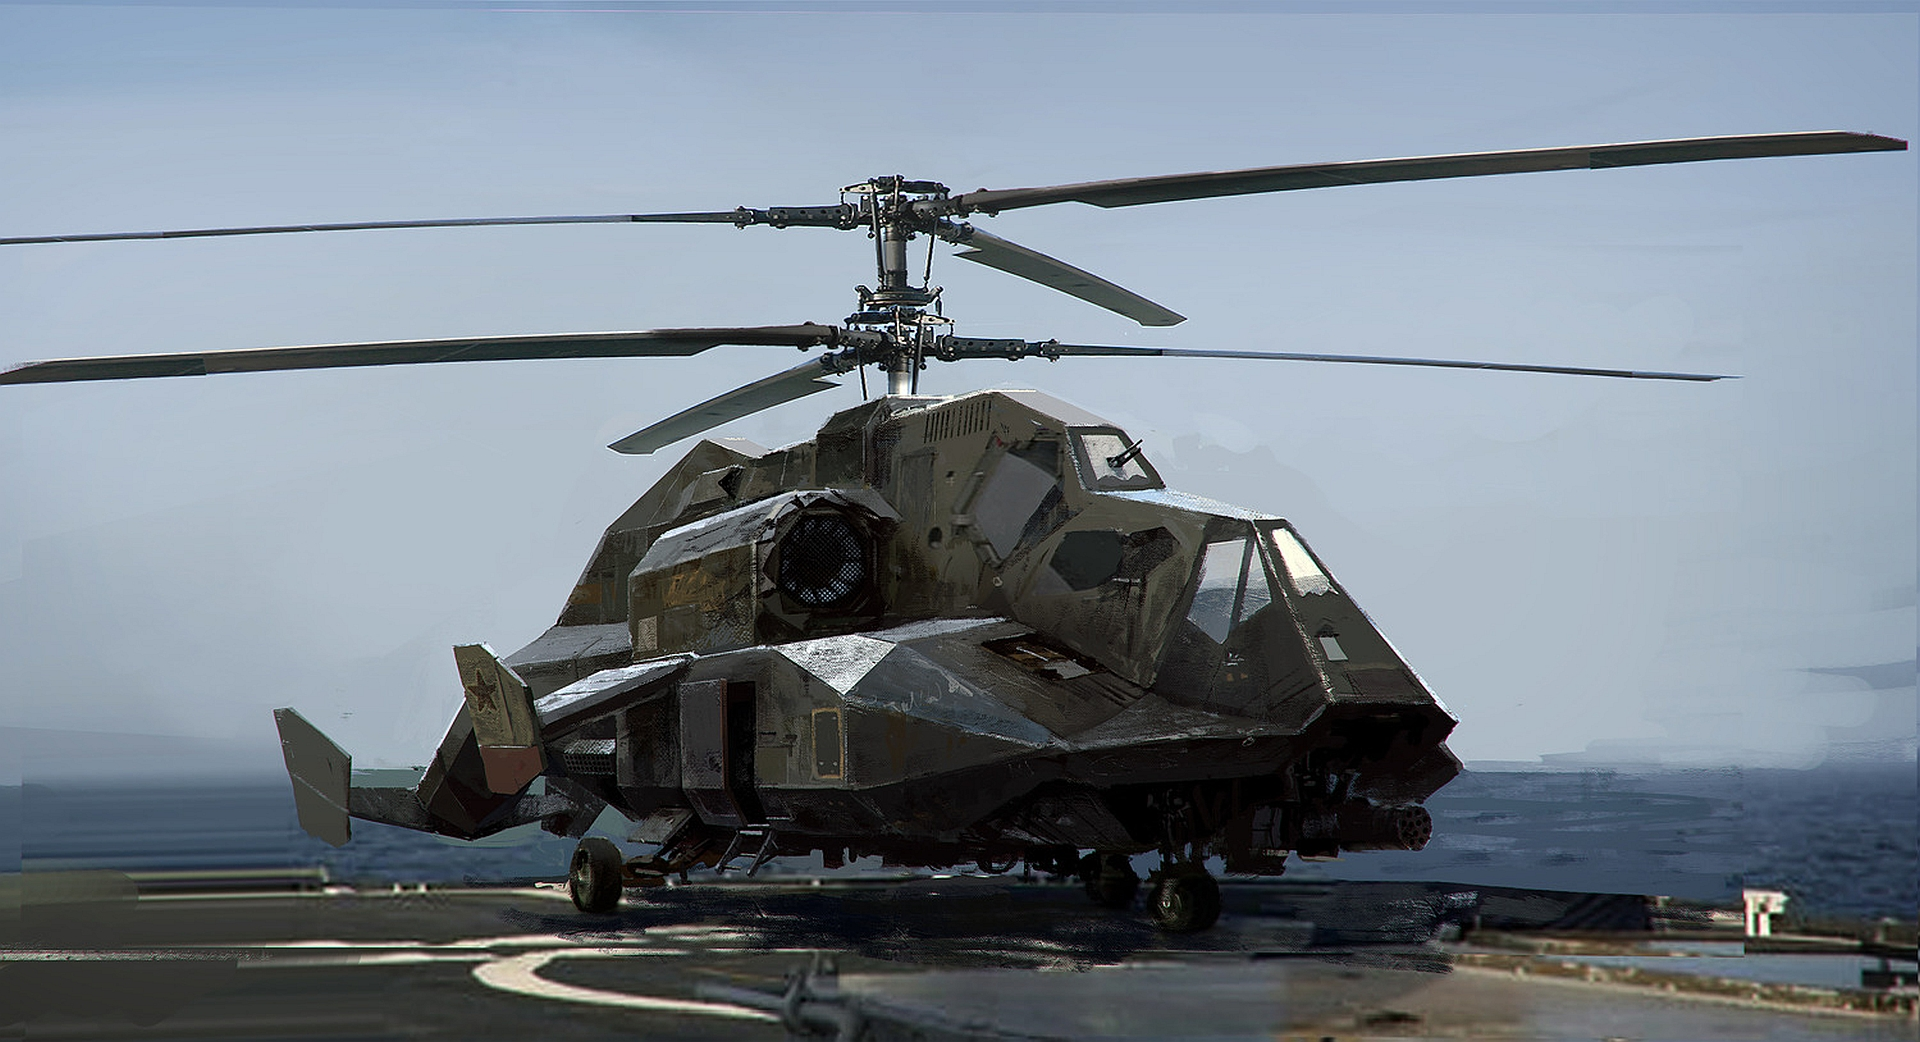 Helicopter Wallpaper and Background Image | 1920x1042 | ID ...